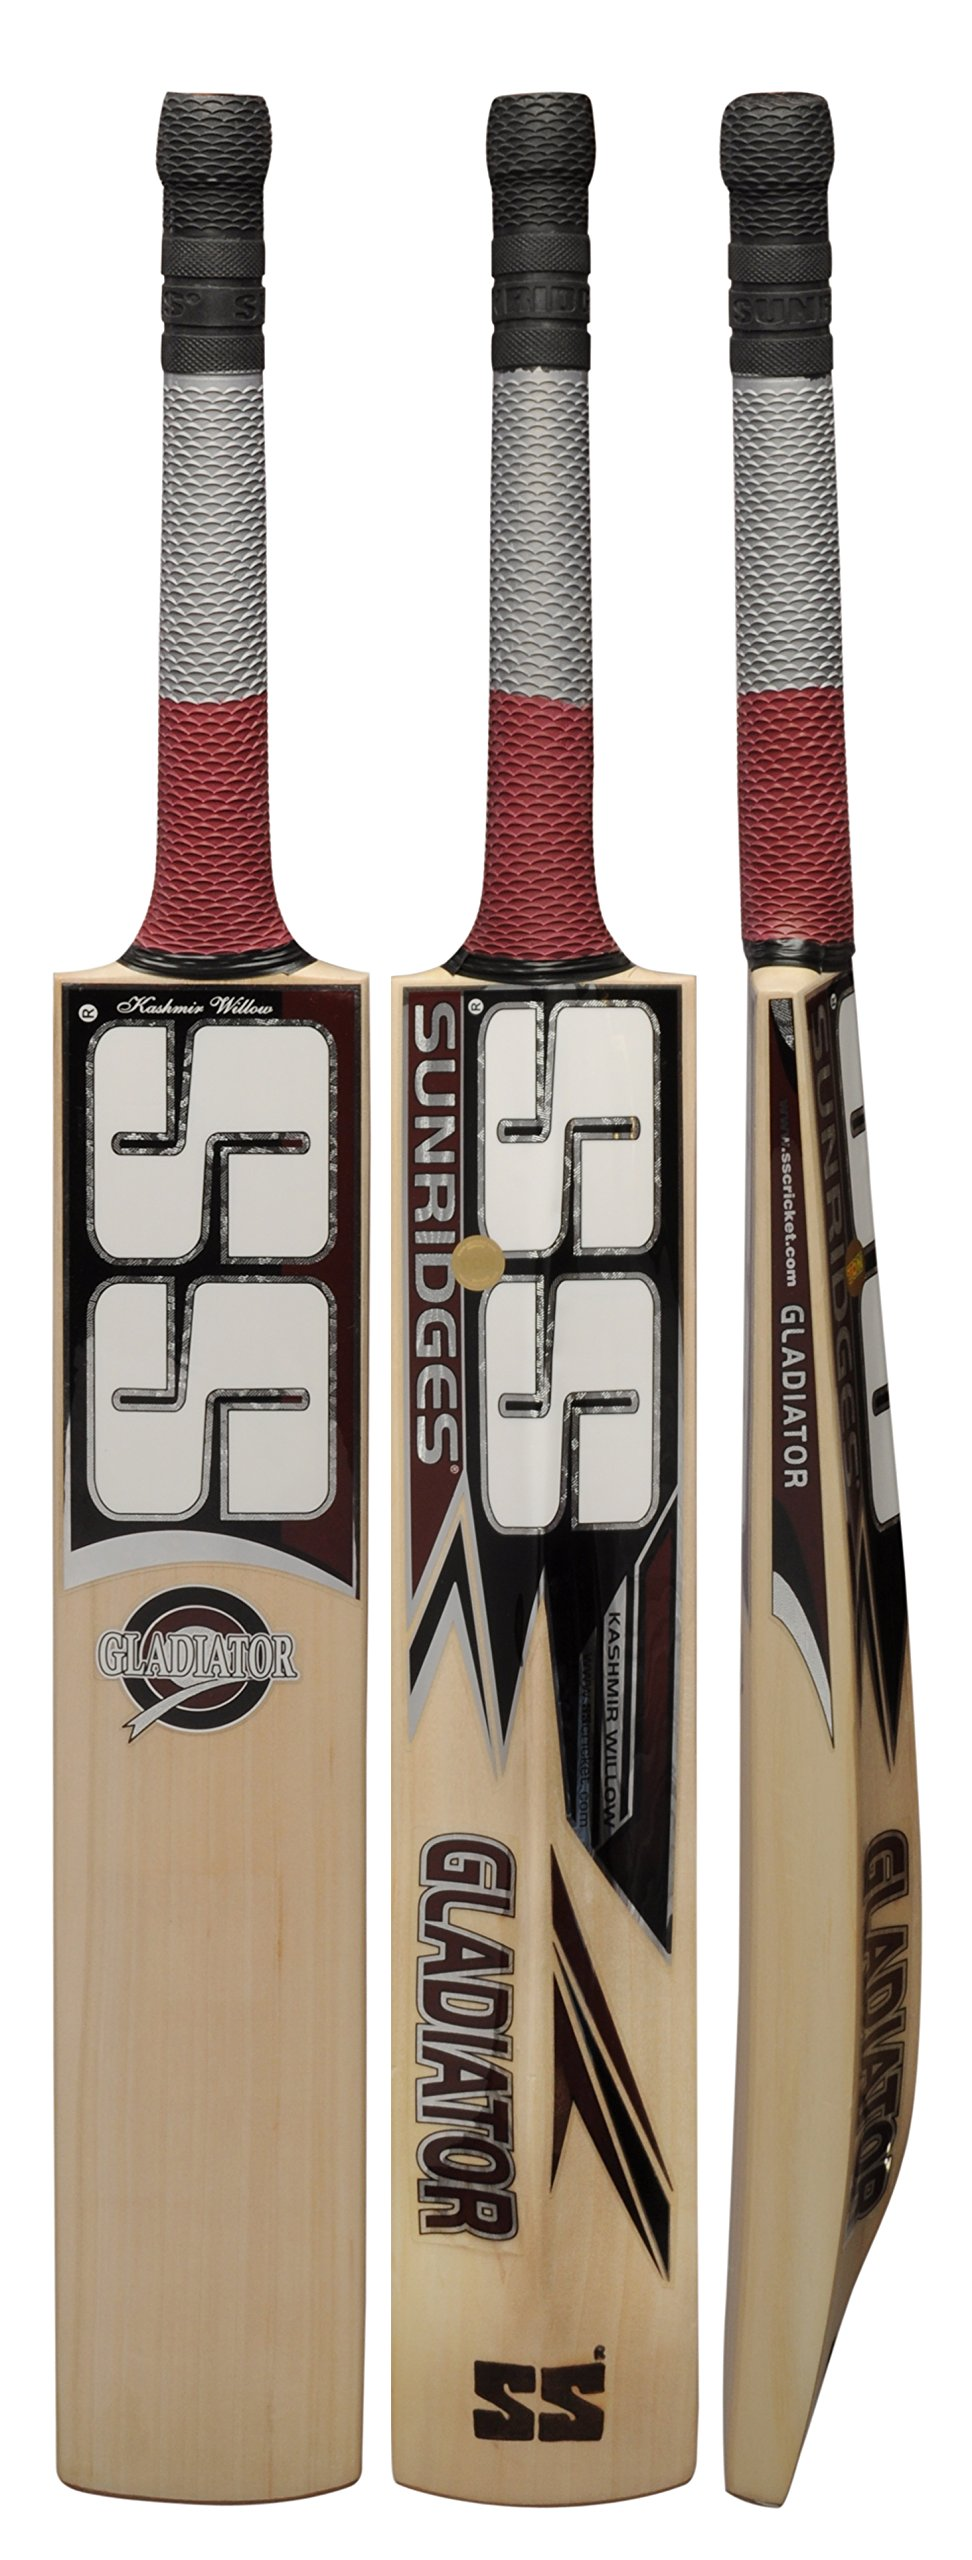 Cricket Bat SS Gladiator Kashmir Willow Full Adult Size Short Handle by Sunridges with free SS Sunridges Bat Cover - Bat suitable for playing with normal cork ball or heavy tennis ball